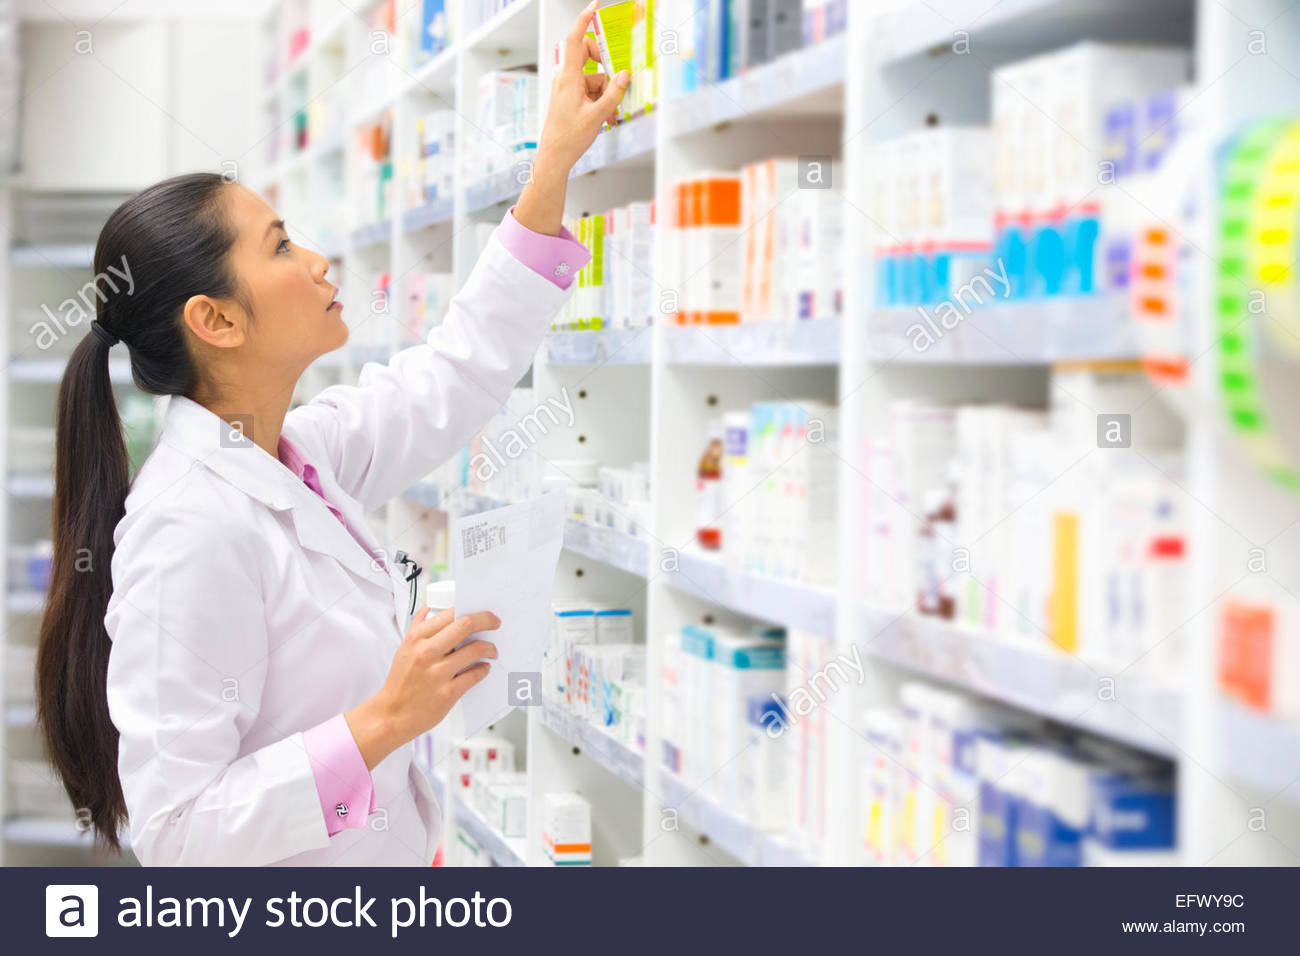 Pharmacist, holding prescription, looking for medication on pharmacy shelf - Stock Image